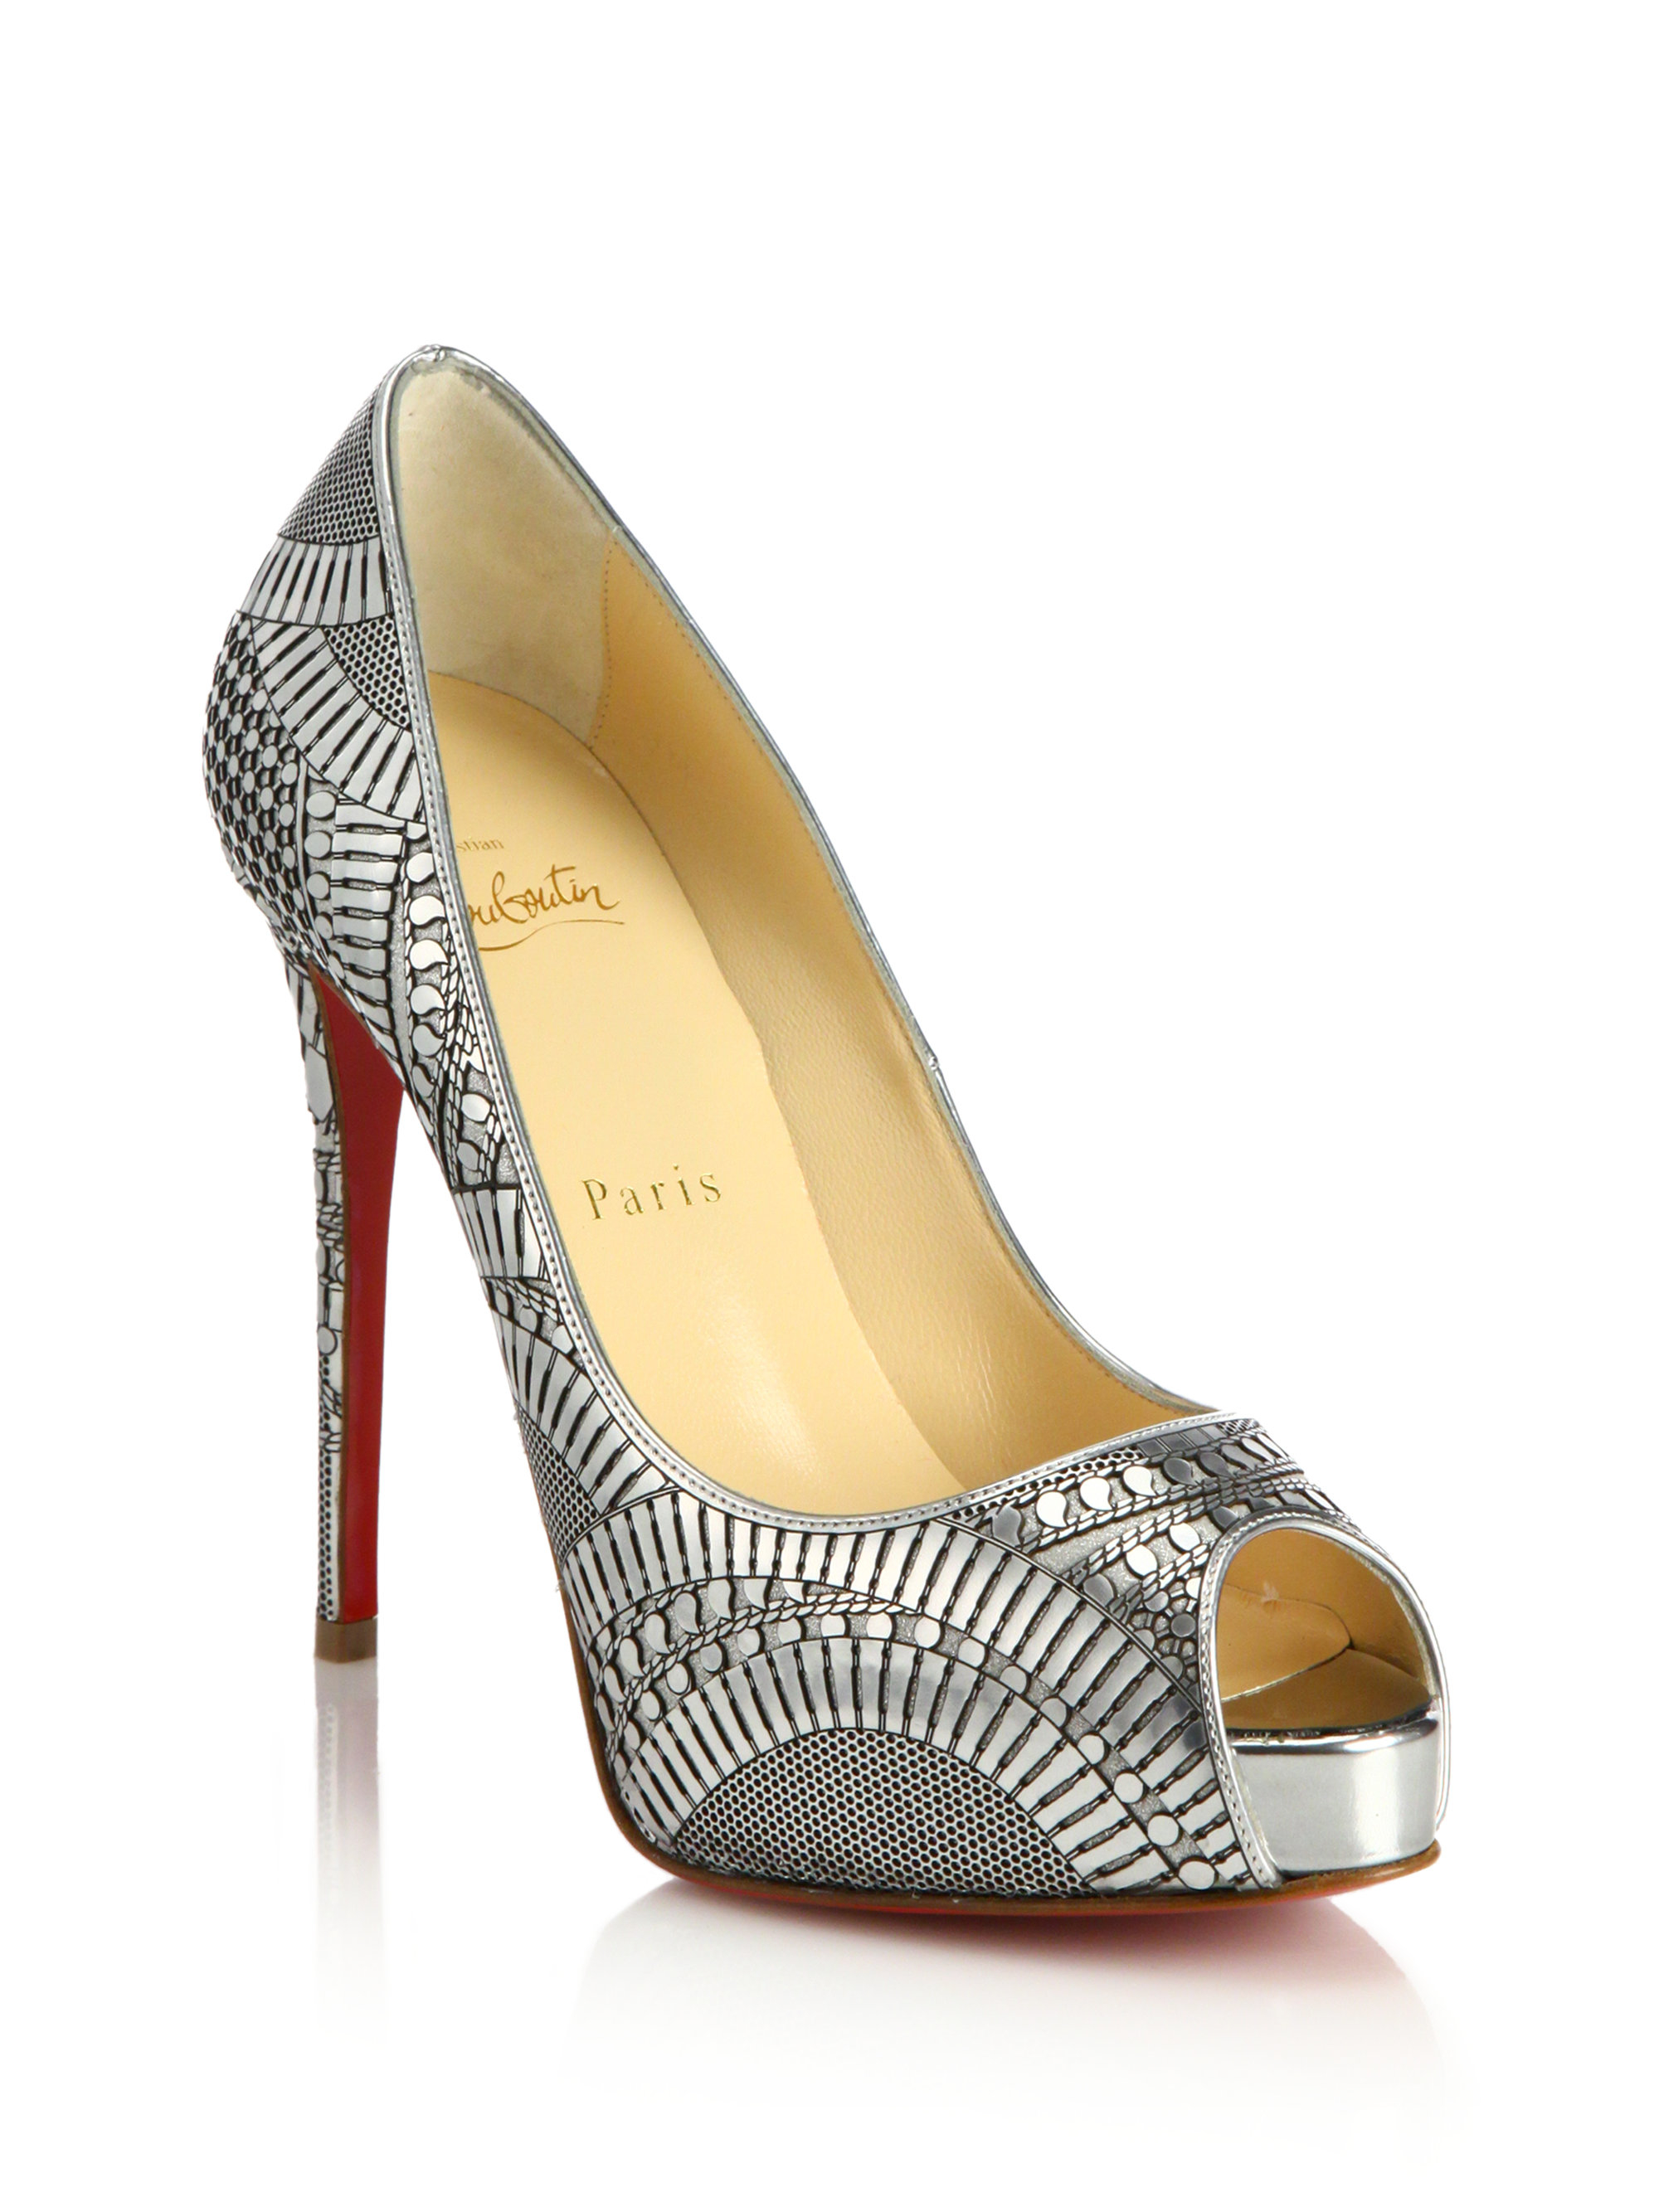 where can i buy louboutin replicas - Artesur ? christian louboutin metallic leather peep-toe pumps Gold ...